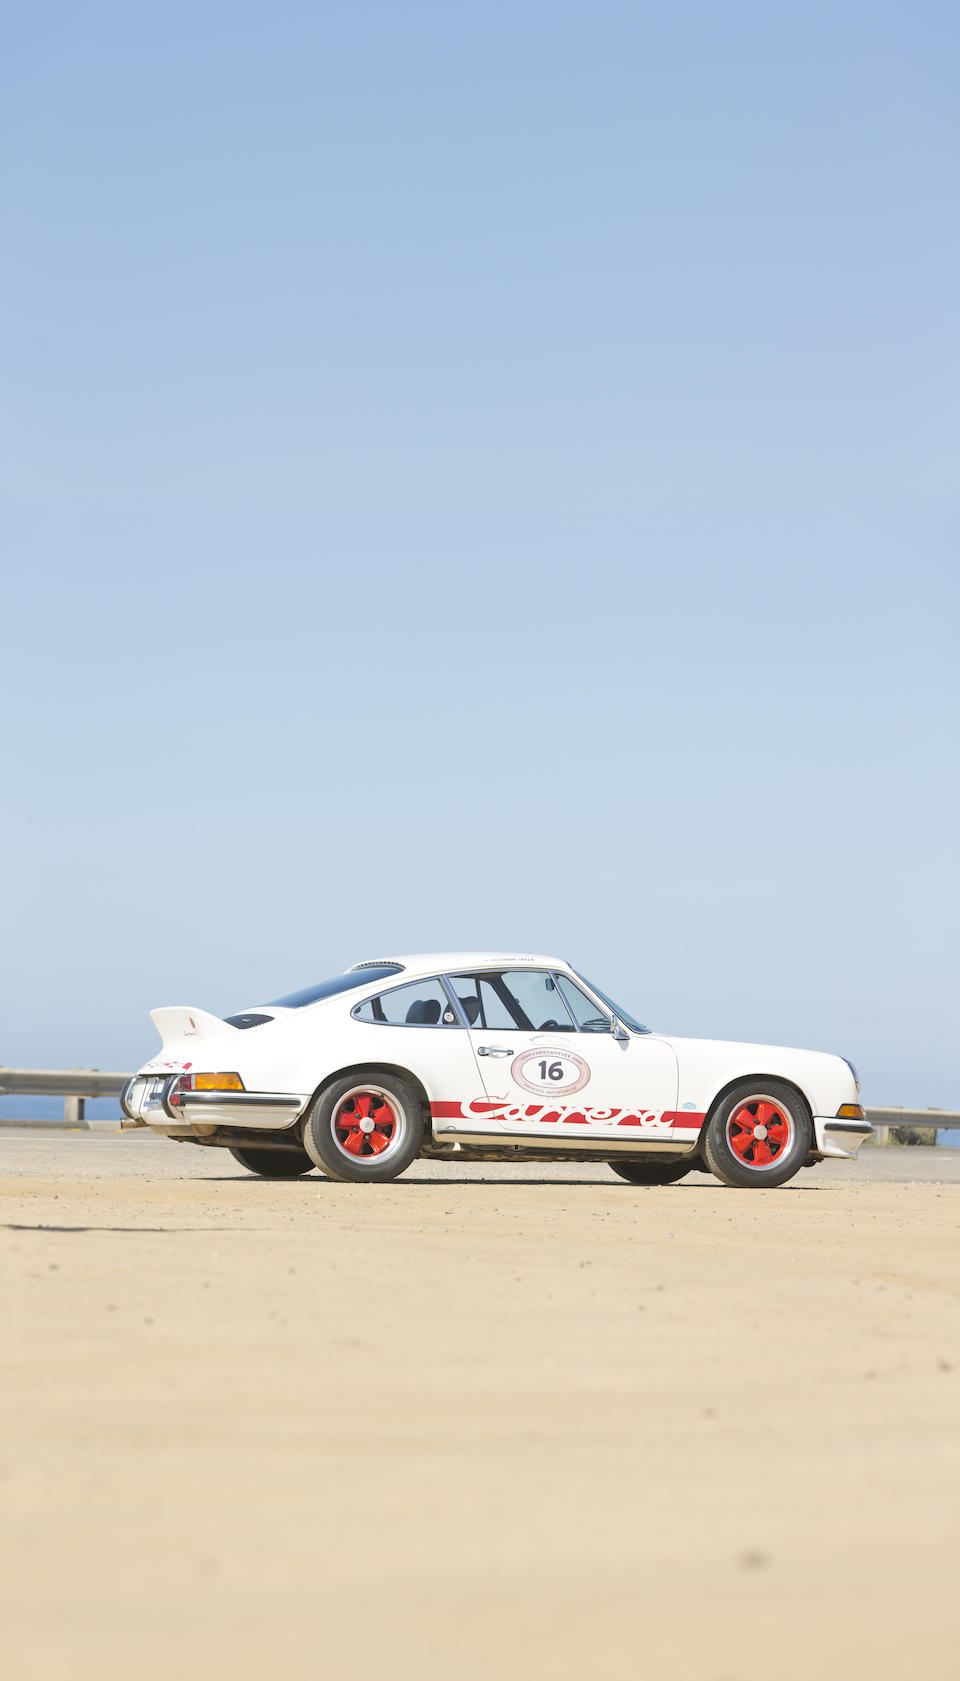 <b>1973 Porsche 911 CARRERA RS 2.7</b><br />Chassis no. 9113601446<br />Engine no. 6631401 (see text)